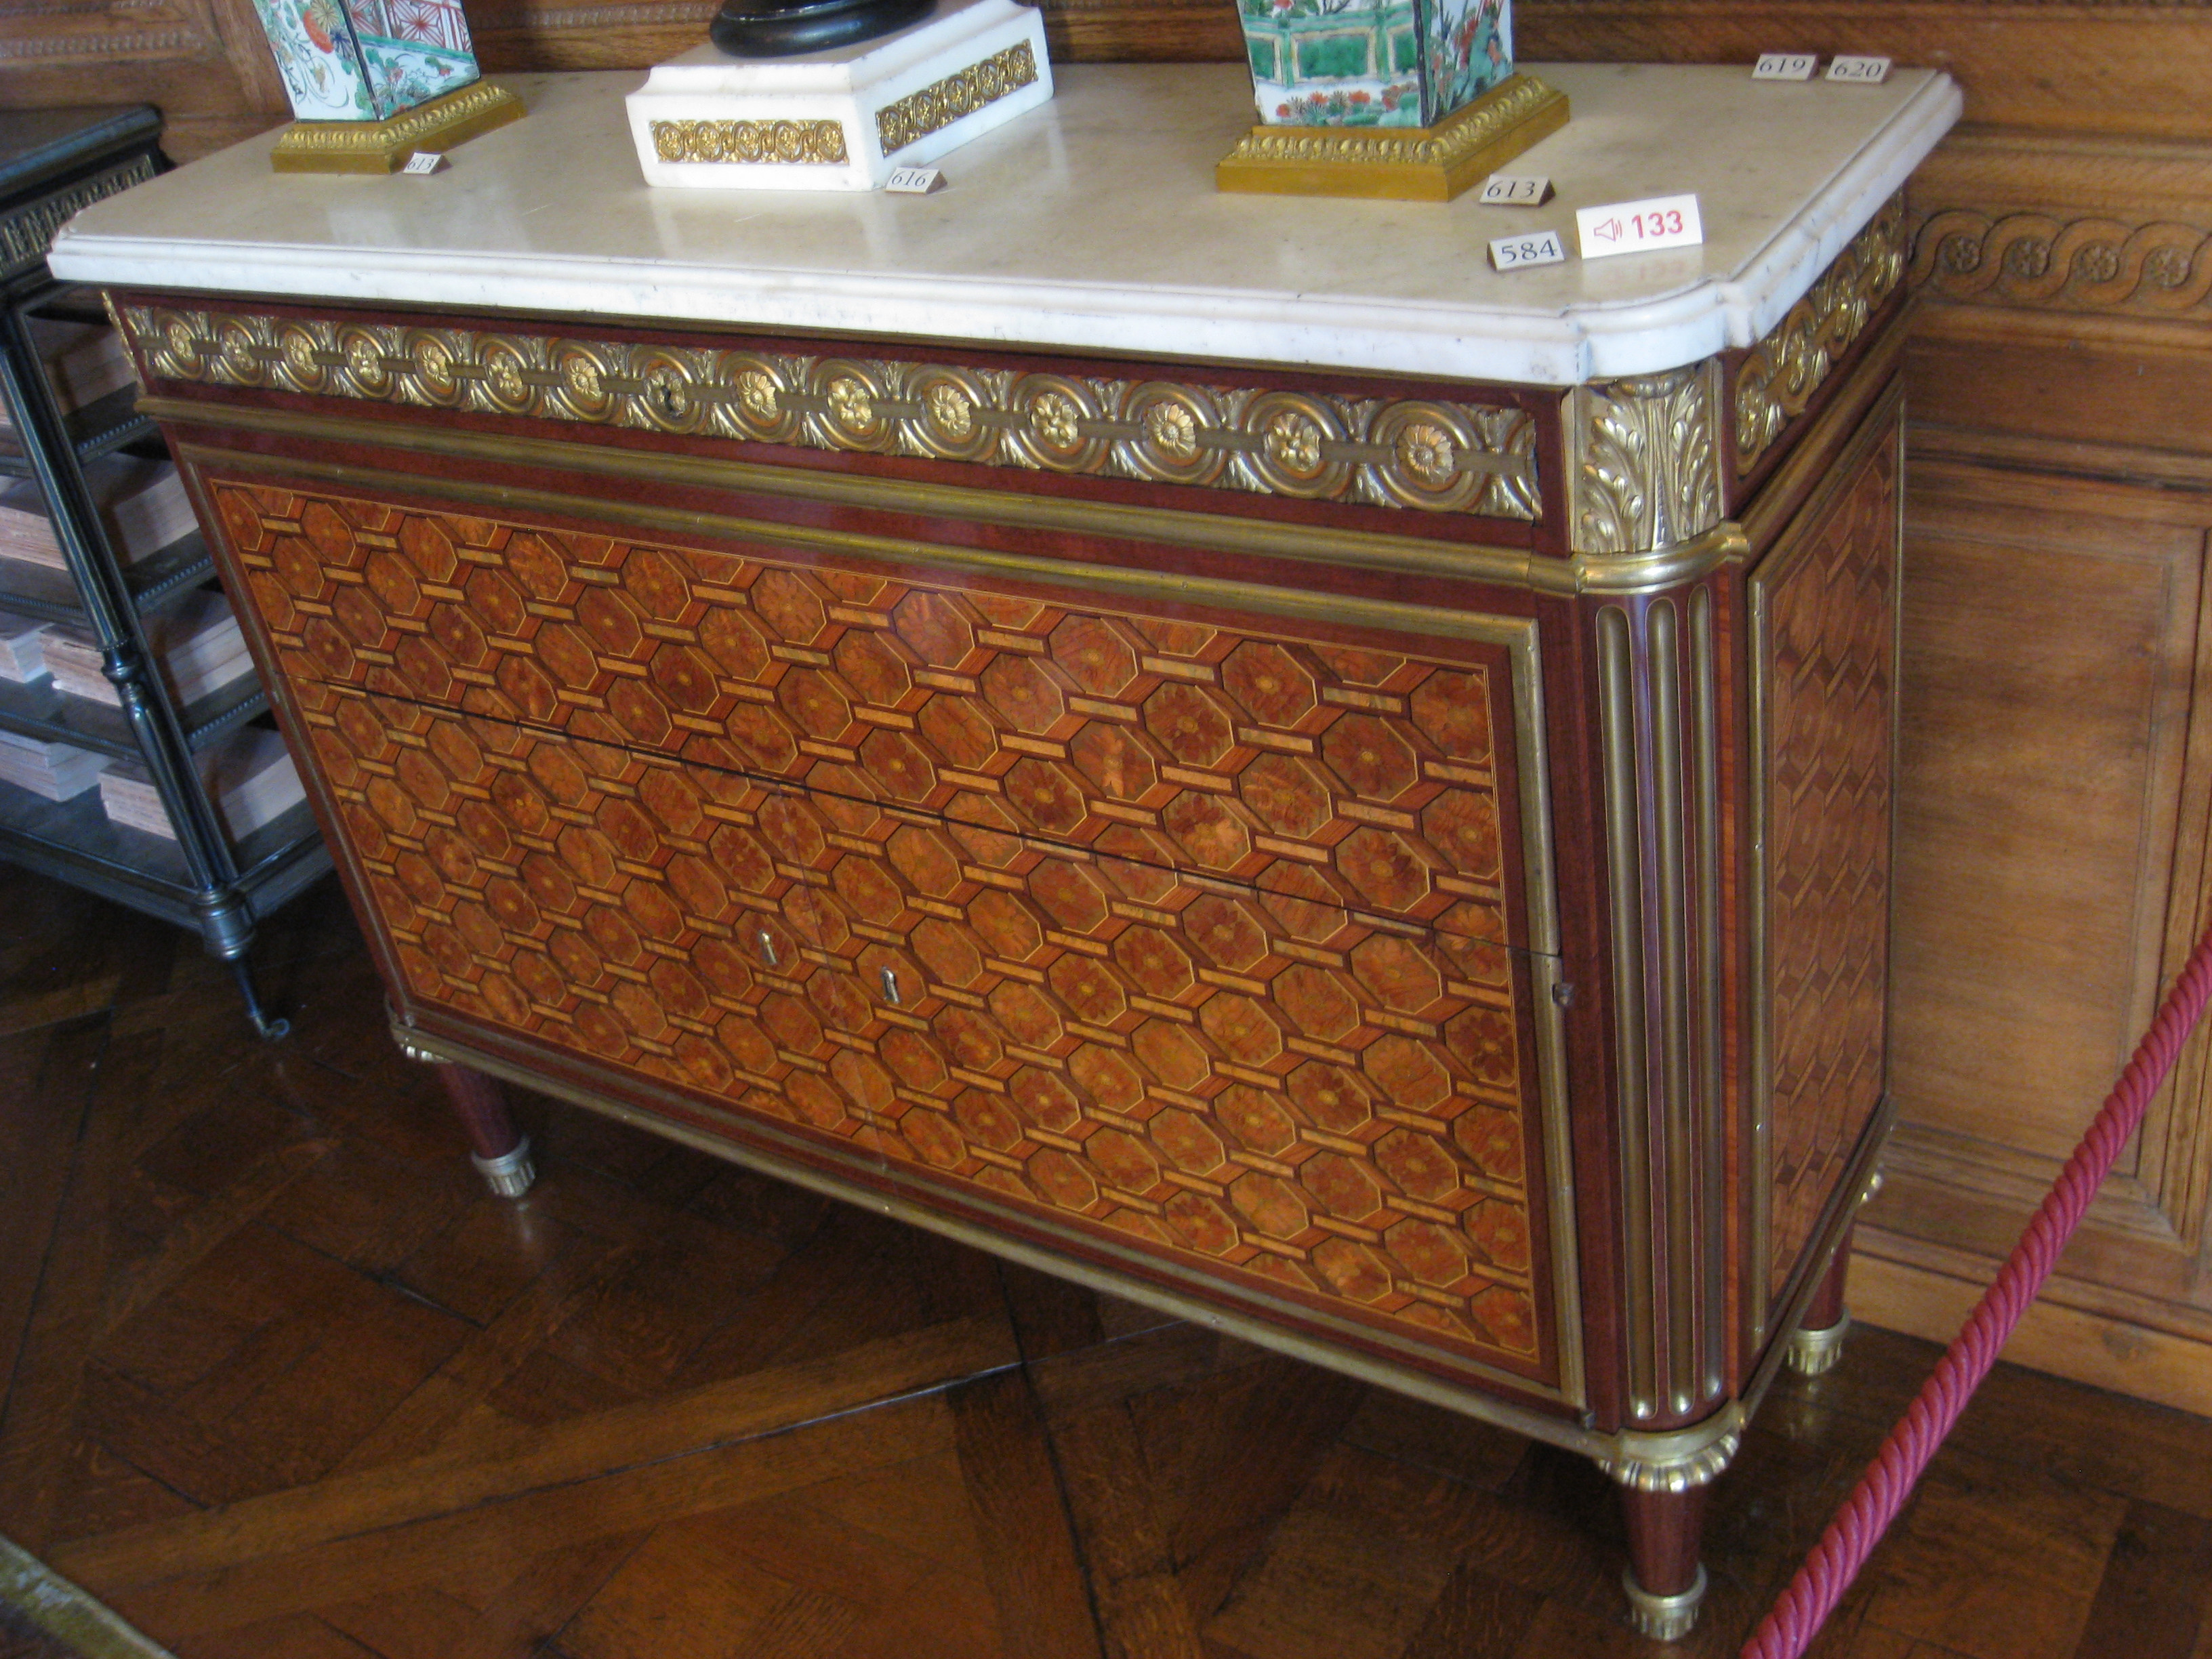 French furniture - Wikipedia, the free encyclopedia